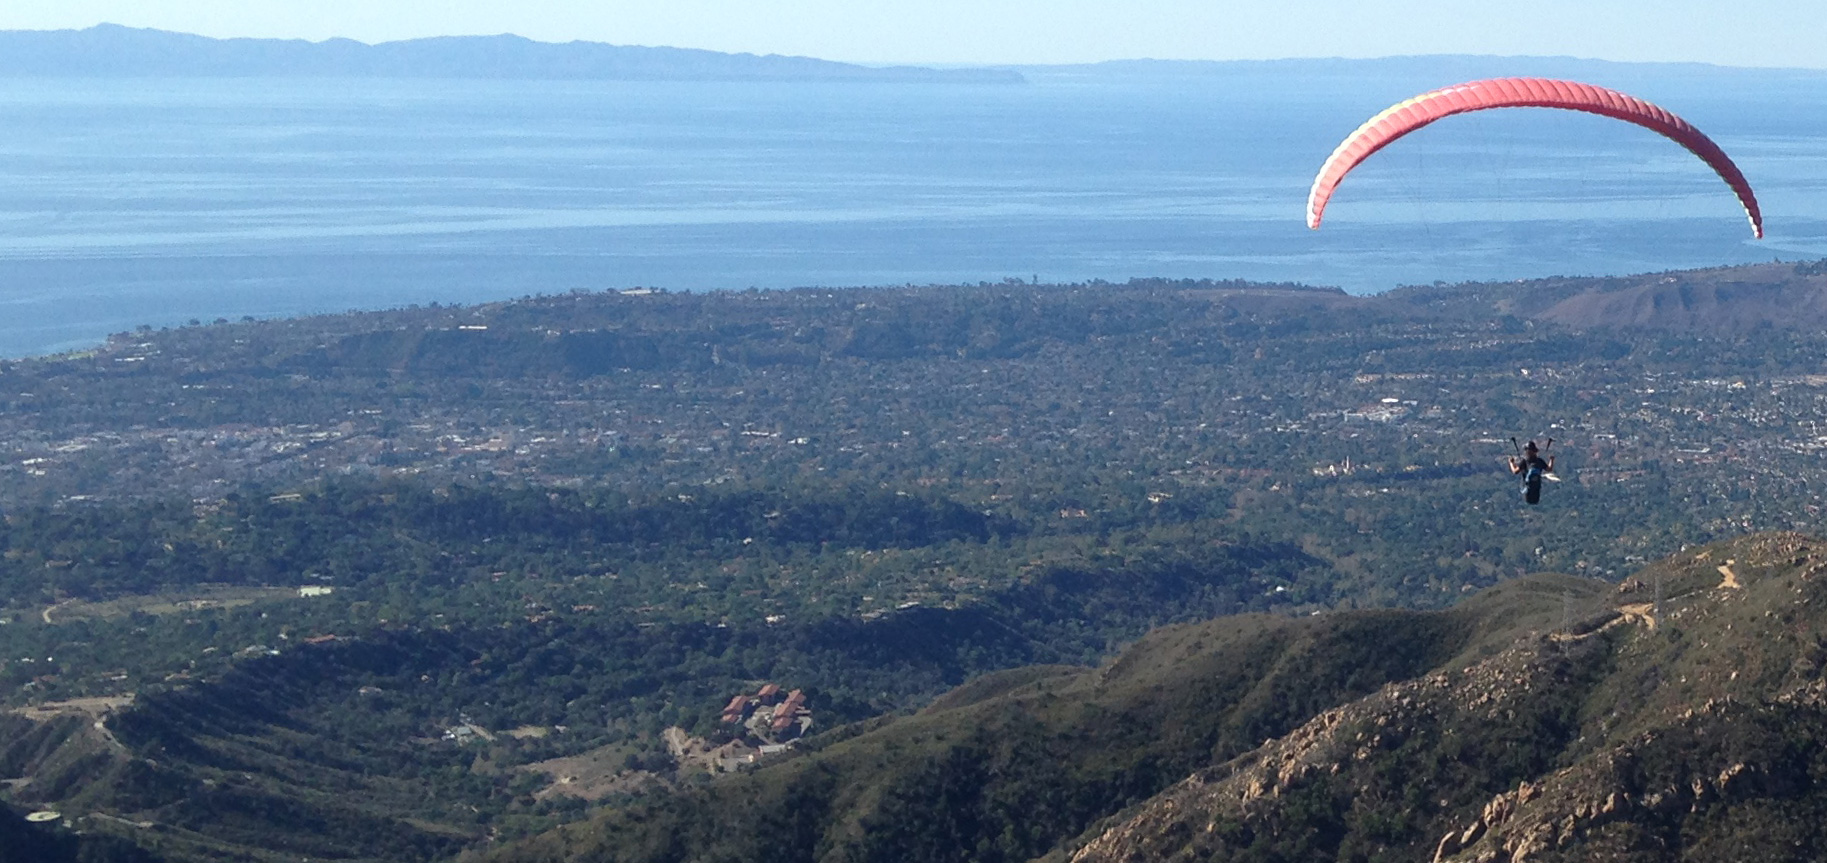 Eagle Paragliding Tandems and Lessons - The Santa Barbara